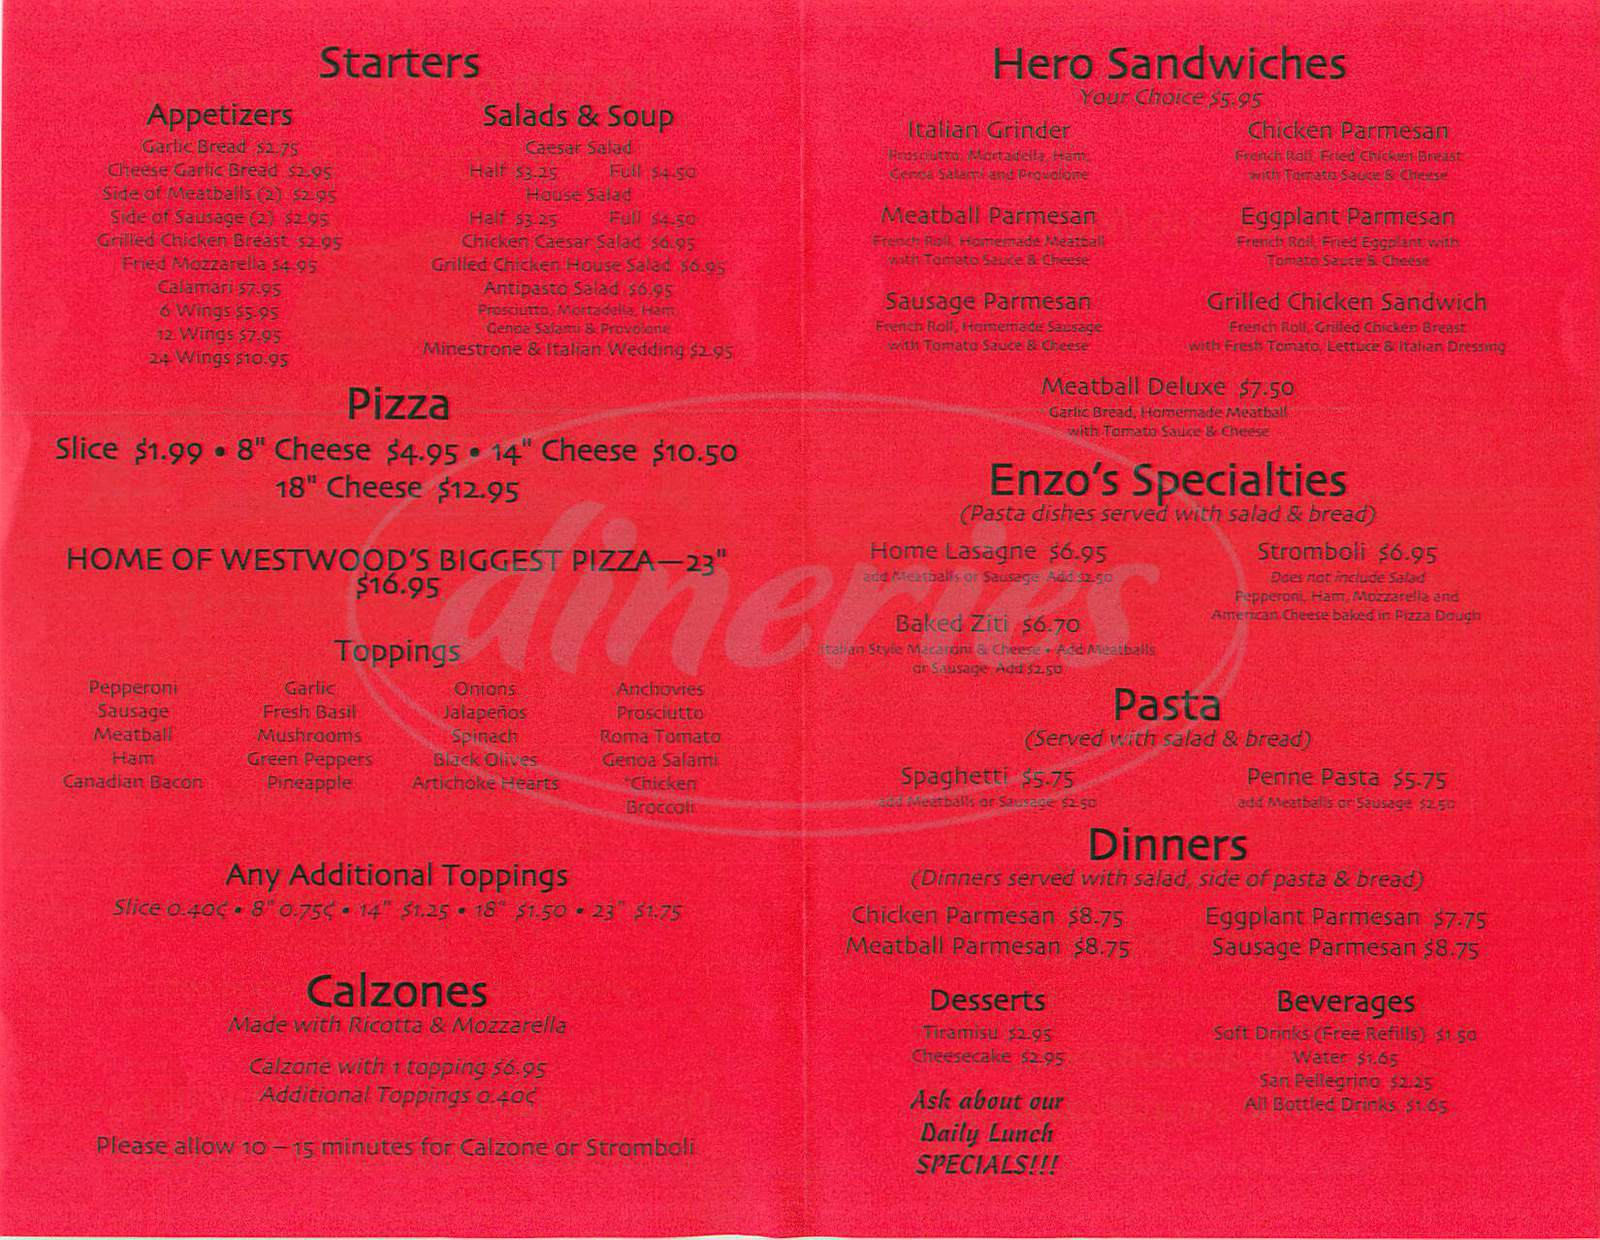 menu for Enzo's Pizzeria